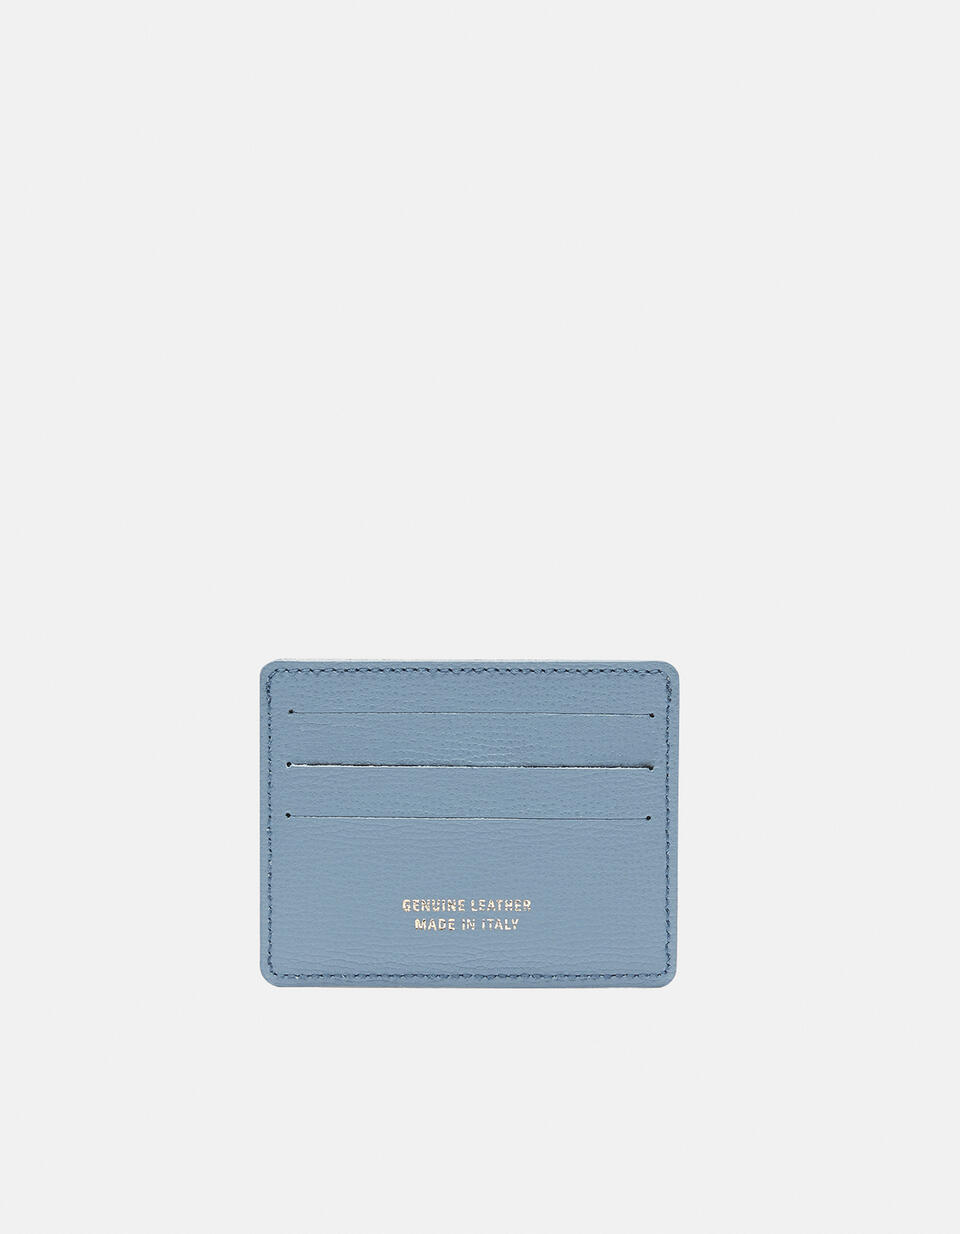 Bella credit car holder with space for banknotes MARE Cuoieria Fiorentina